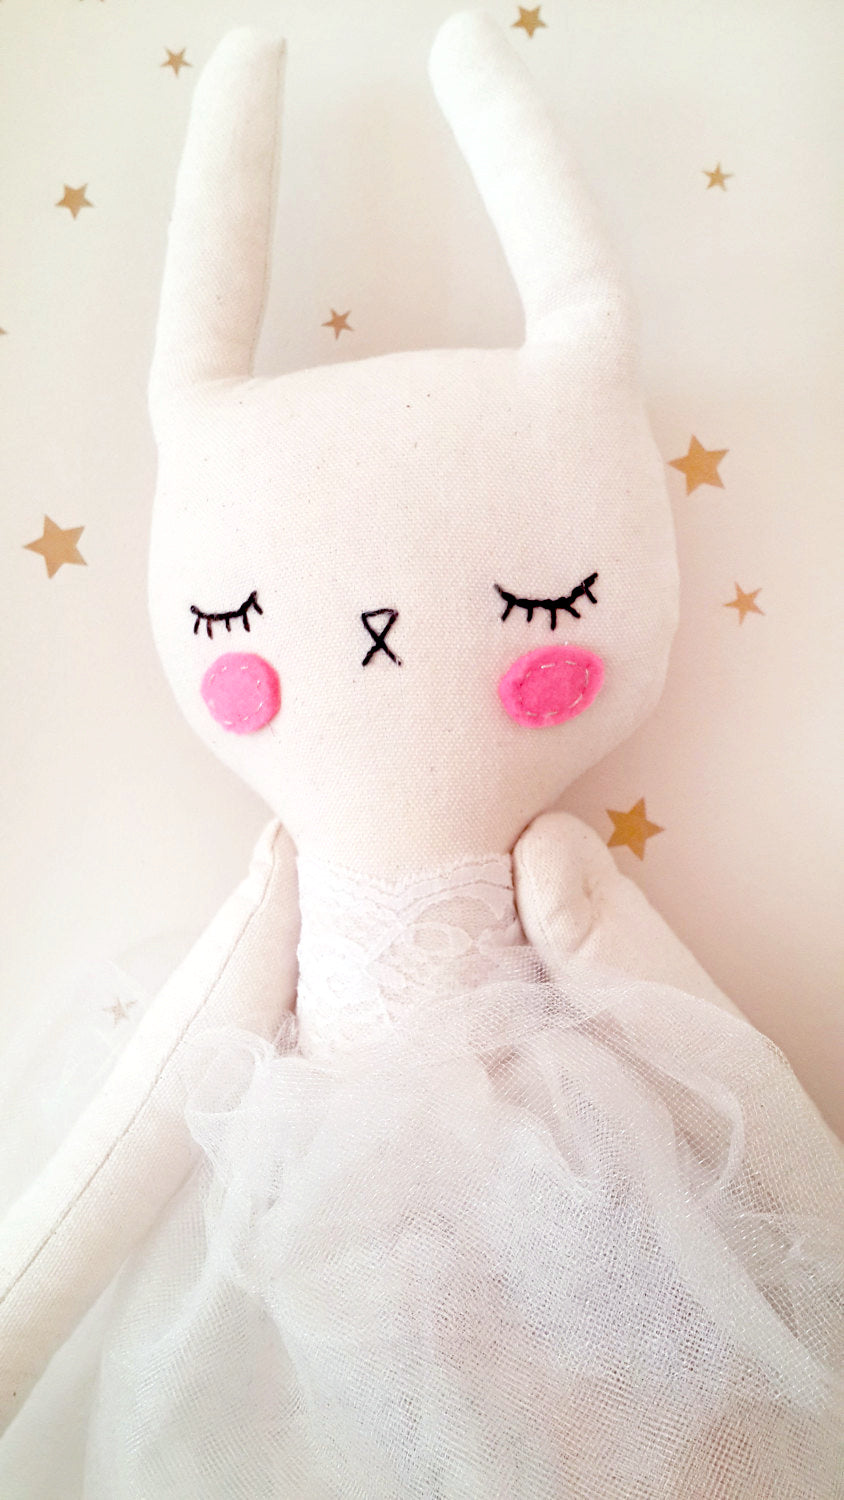 Handmade Plush Animal Doll nursery decor pillow, Bunny Princess - Babazen